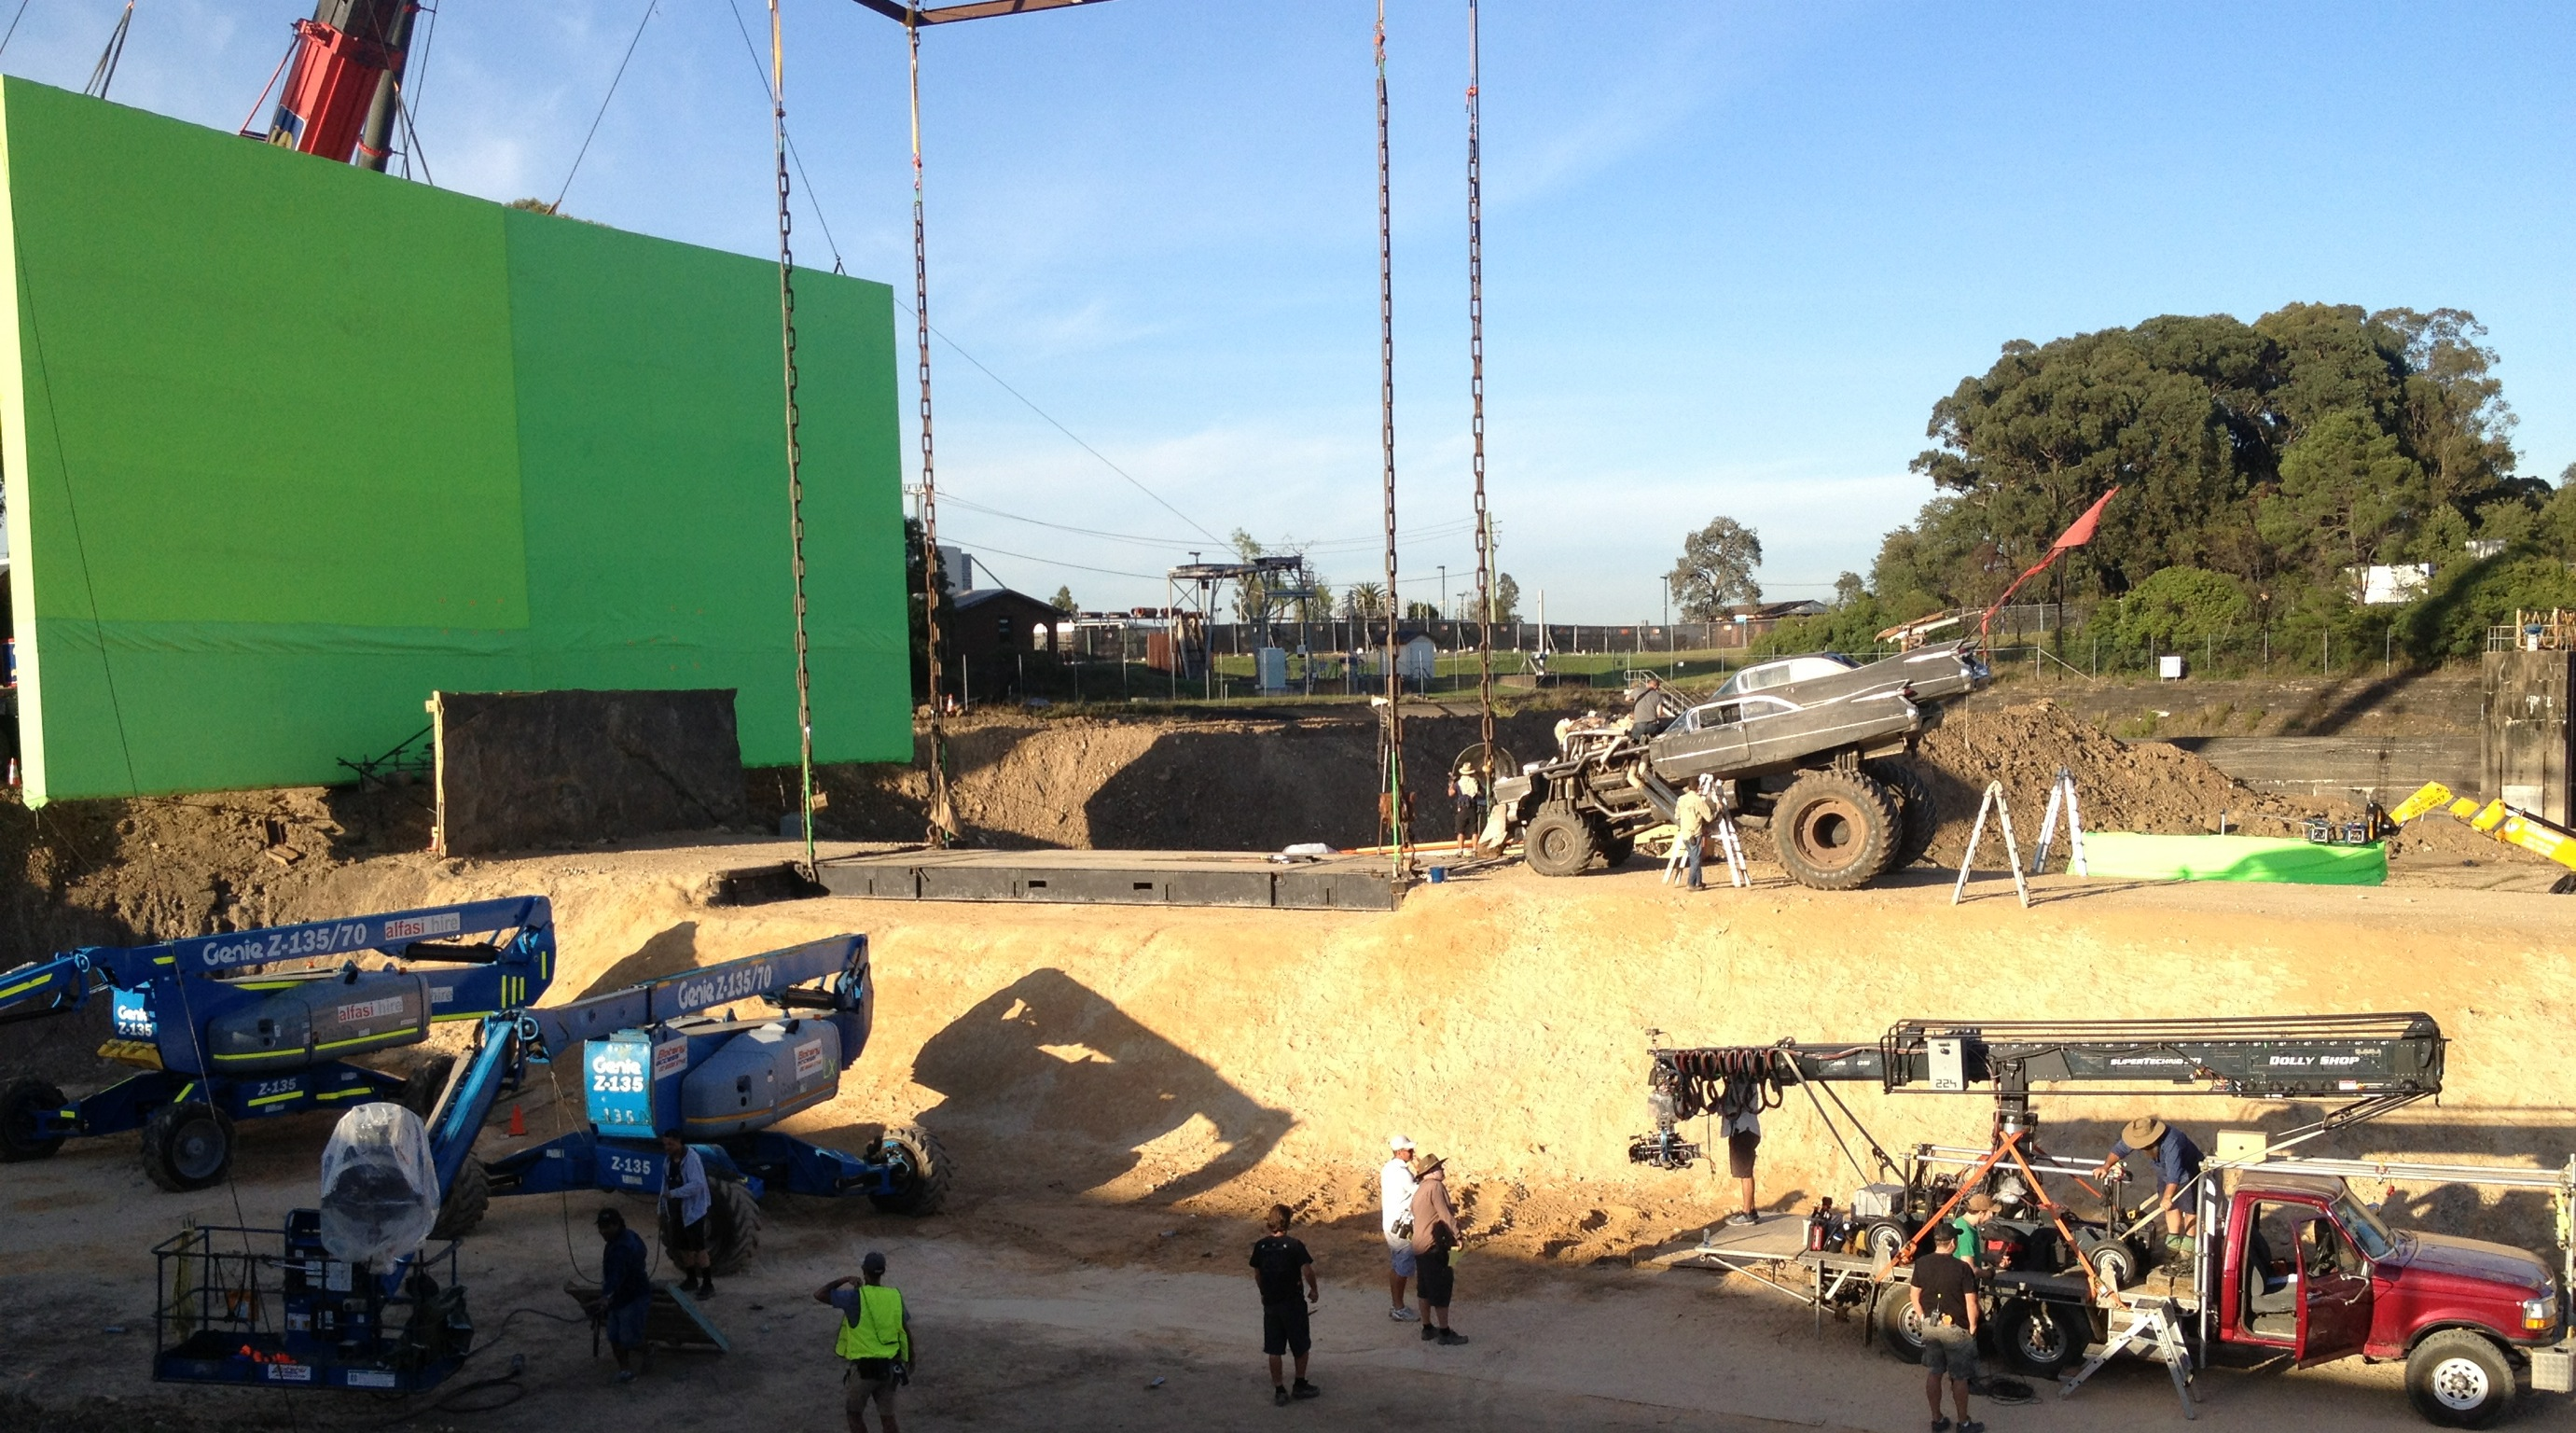 2 of 40' x 40' Green Screens hard backed and flown by cranes.